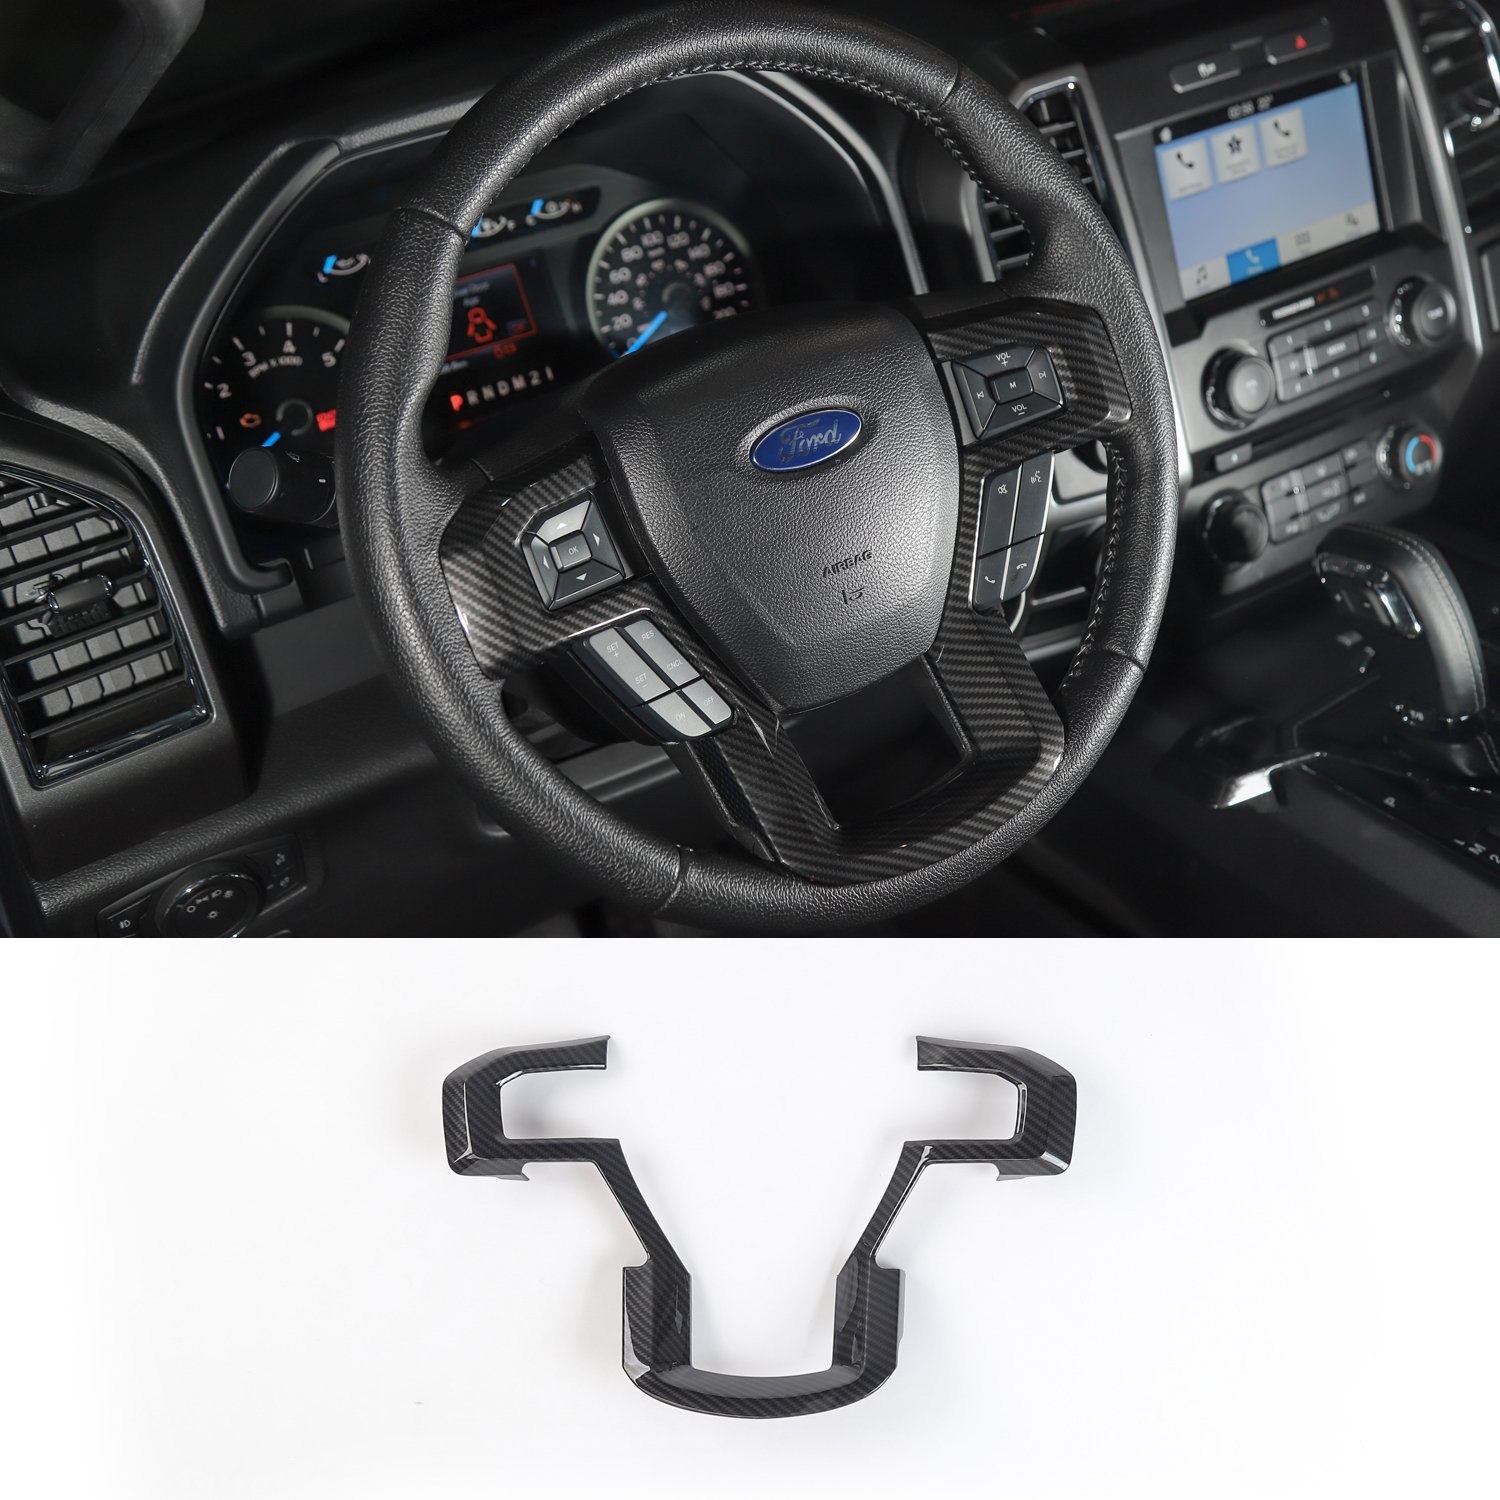 Voodonala Black Carbon Fiber Texture Steering Wheel Decorative Trim Car Steering Wheel Cover for 2015 2016 2017 Ford F150 F250 F350 Super Duty